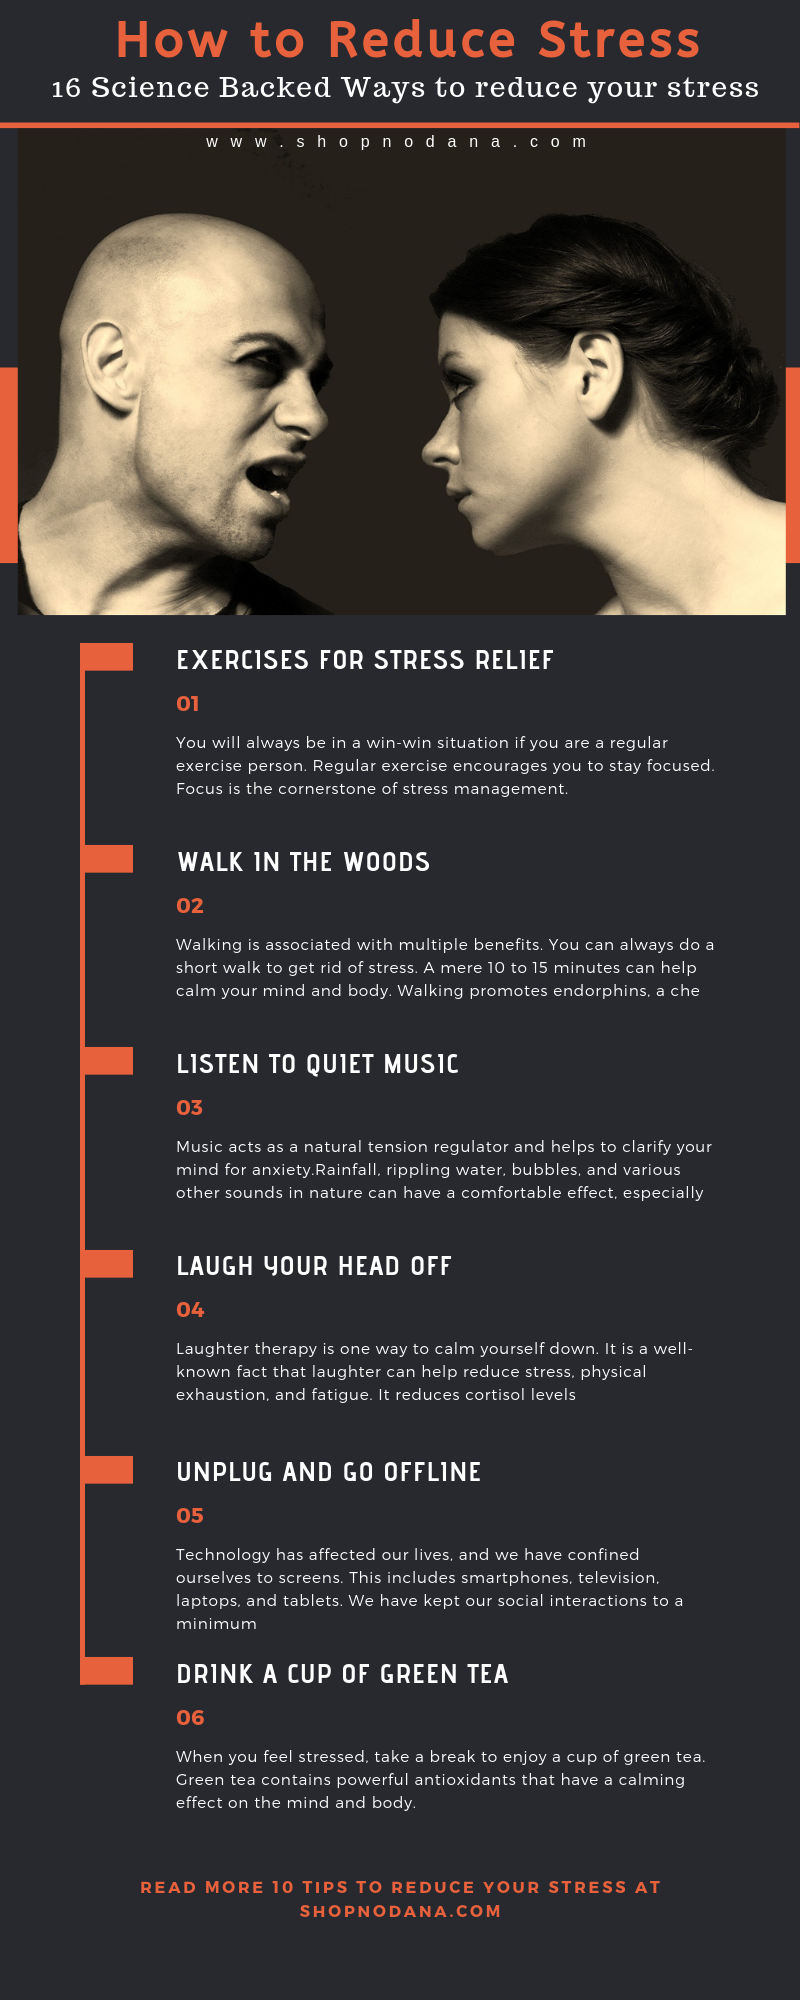 How to reduce stress- 16 Science Backed Ways to reduce your stress